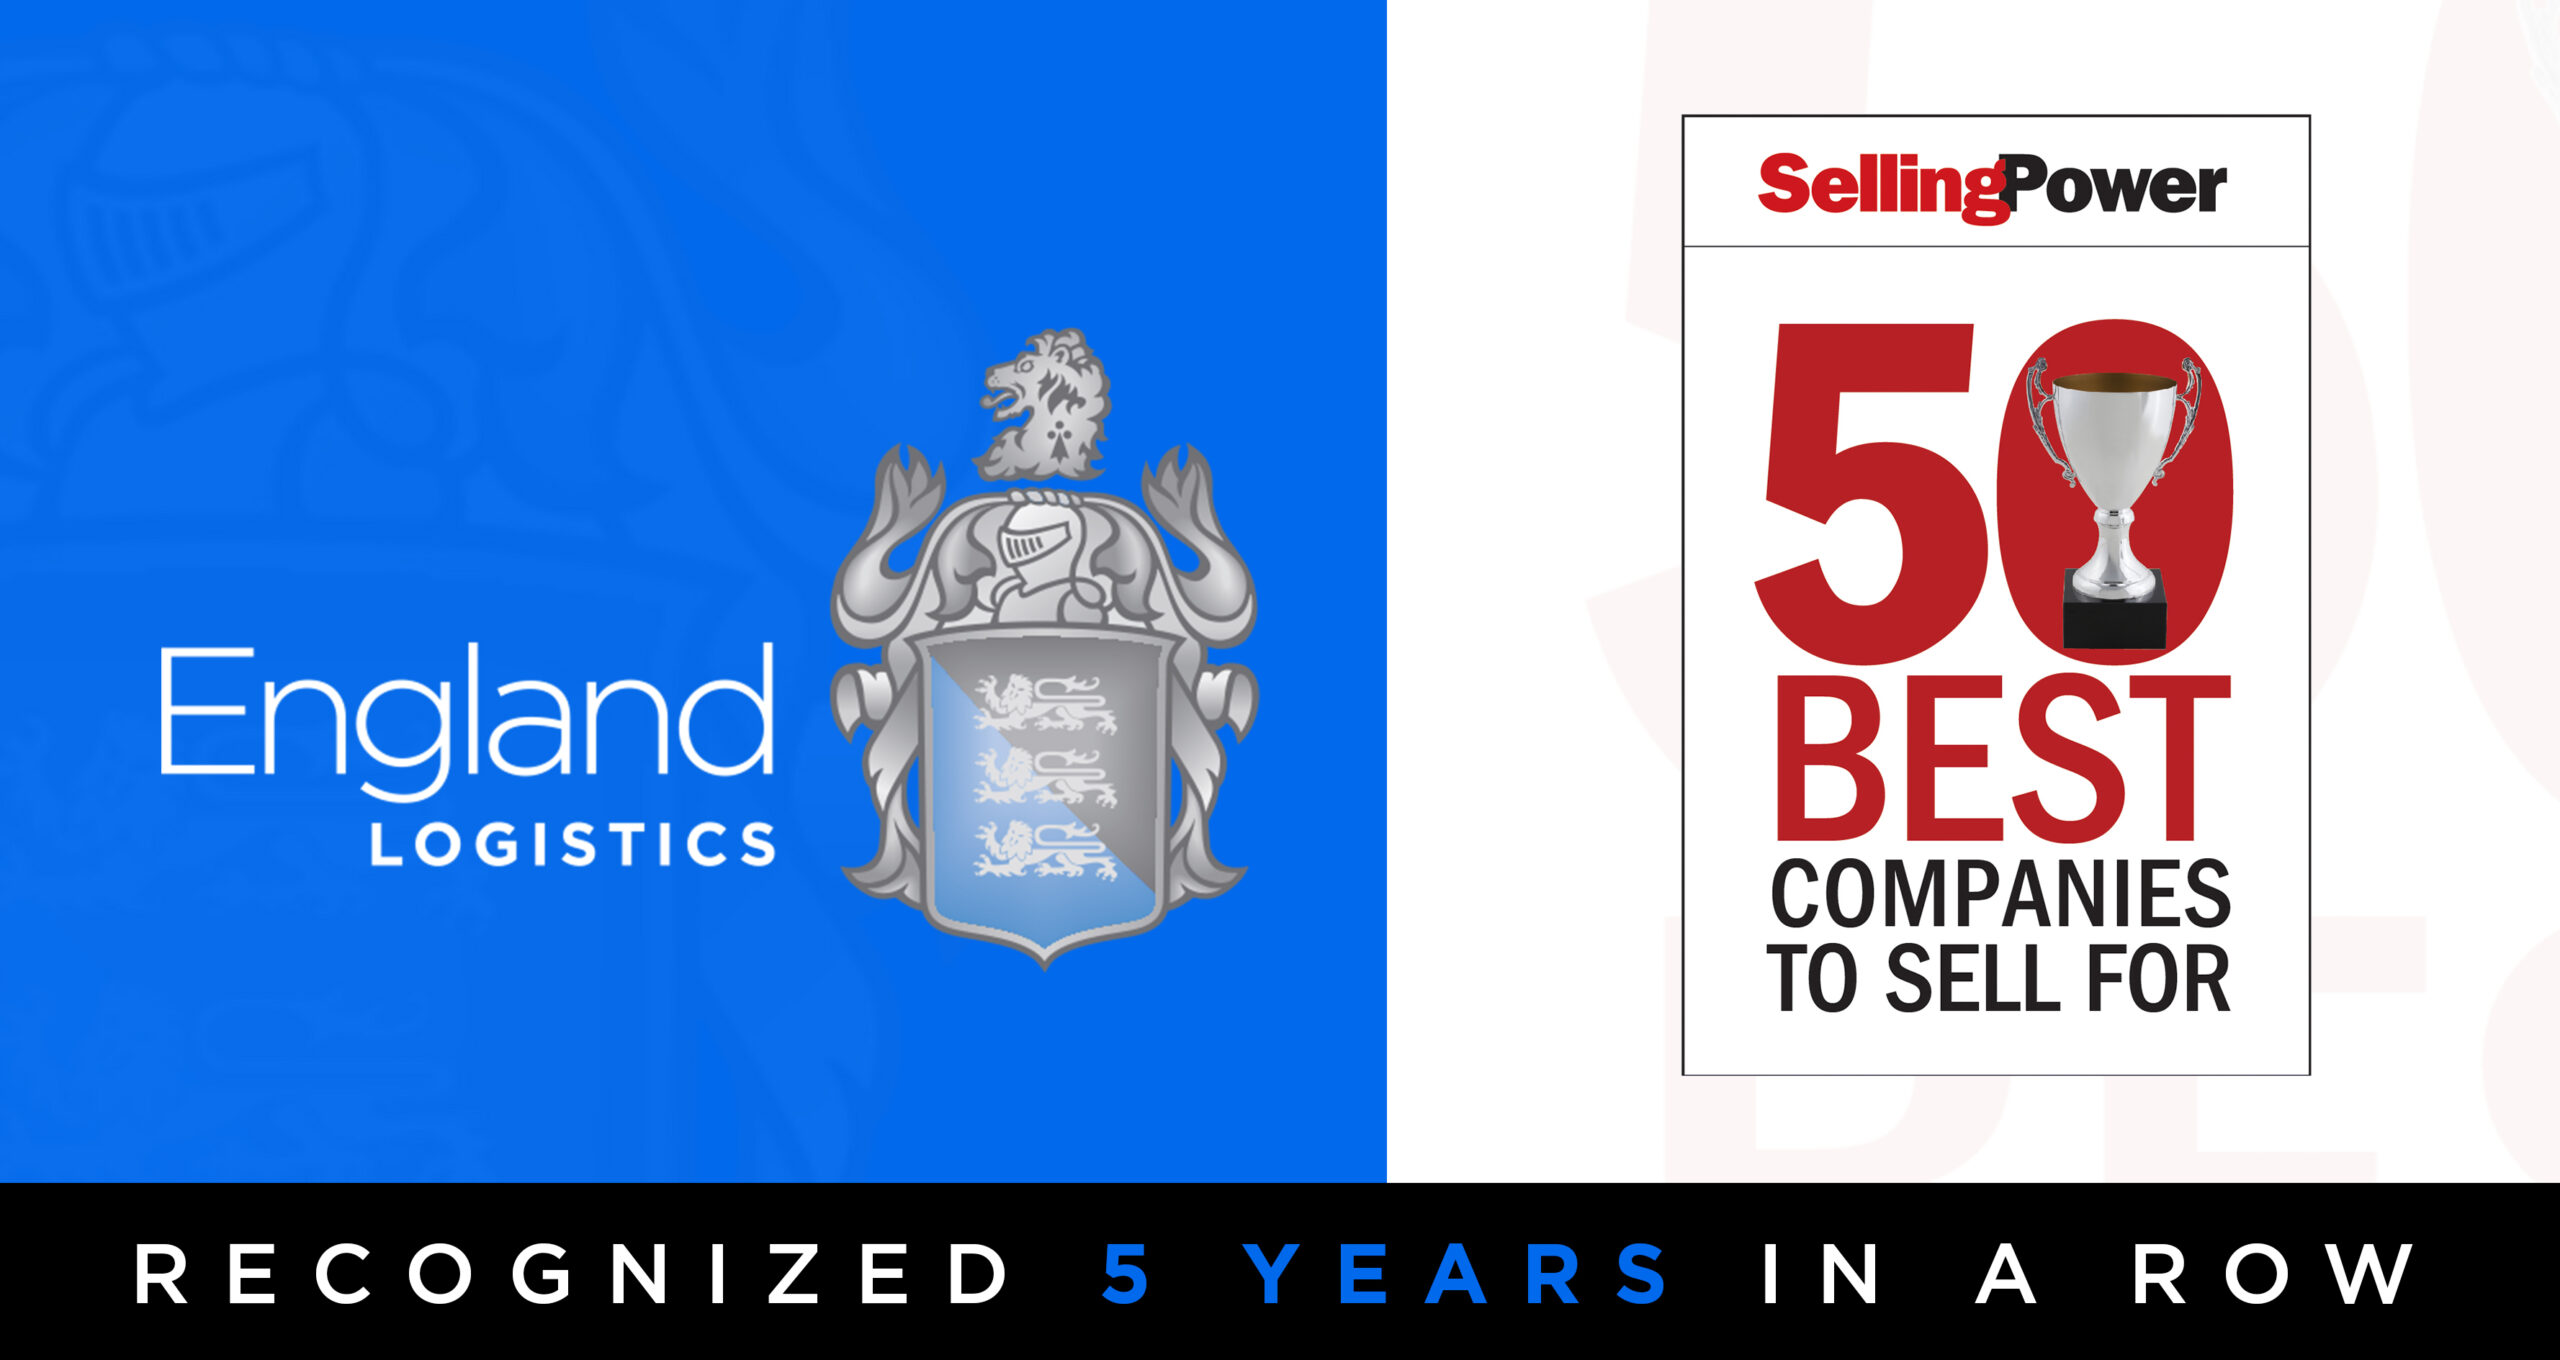 selling power 50 best companies to sell for header recognized 5 years in a row